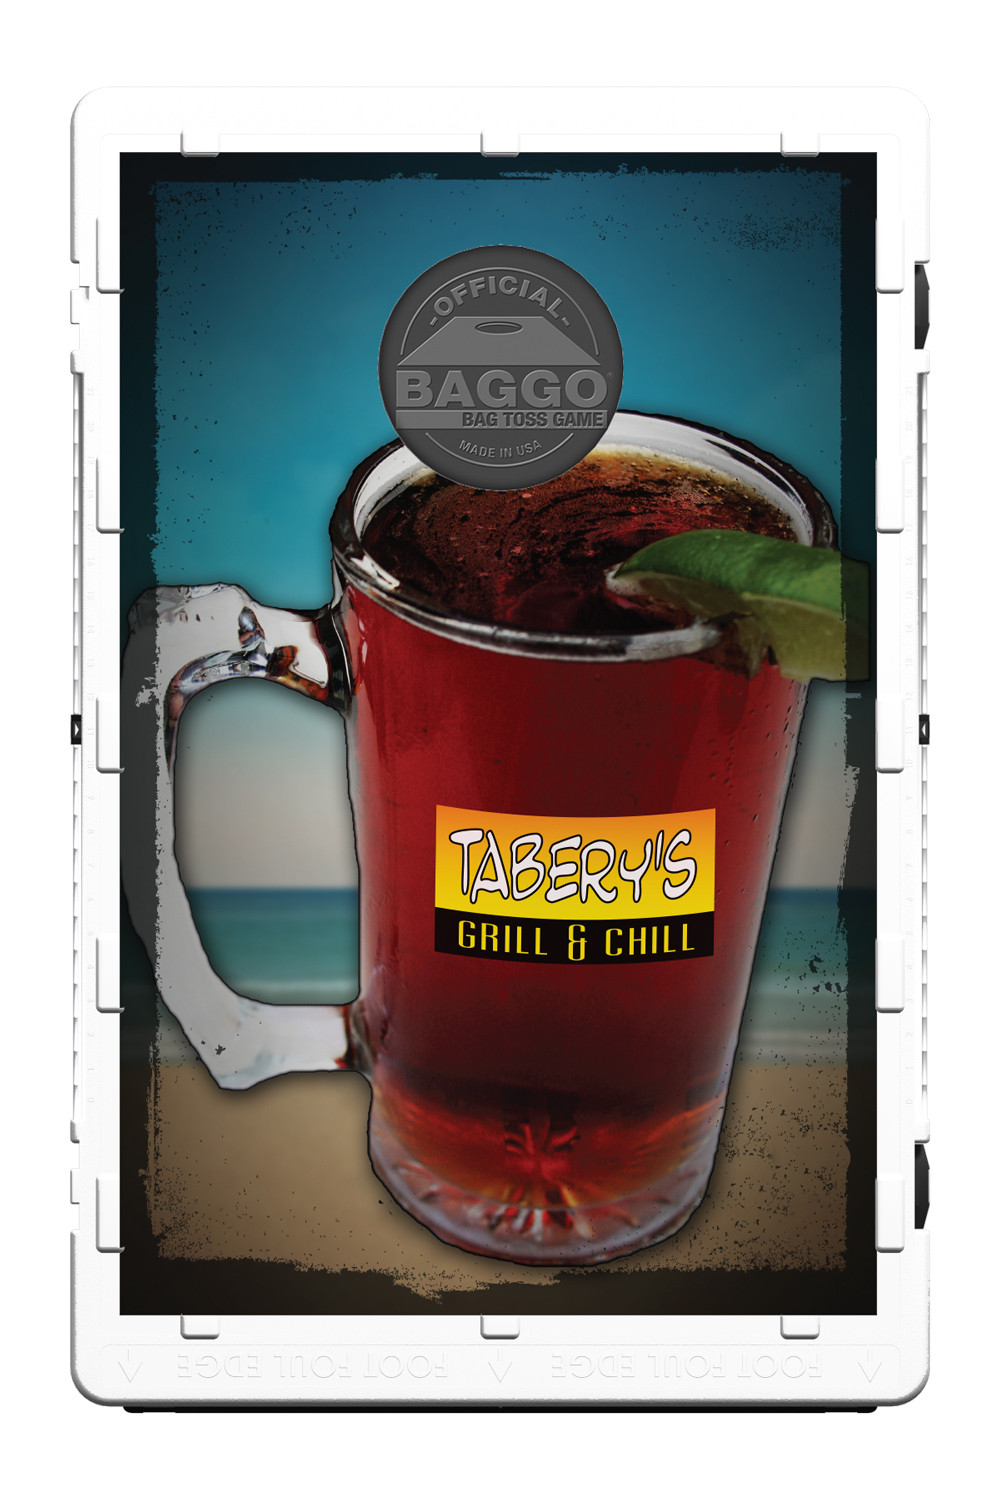 Beer In Mexico On The Beach Screens (only) by Baggo